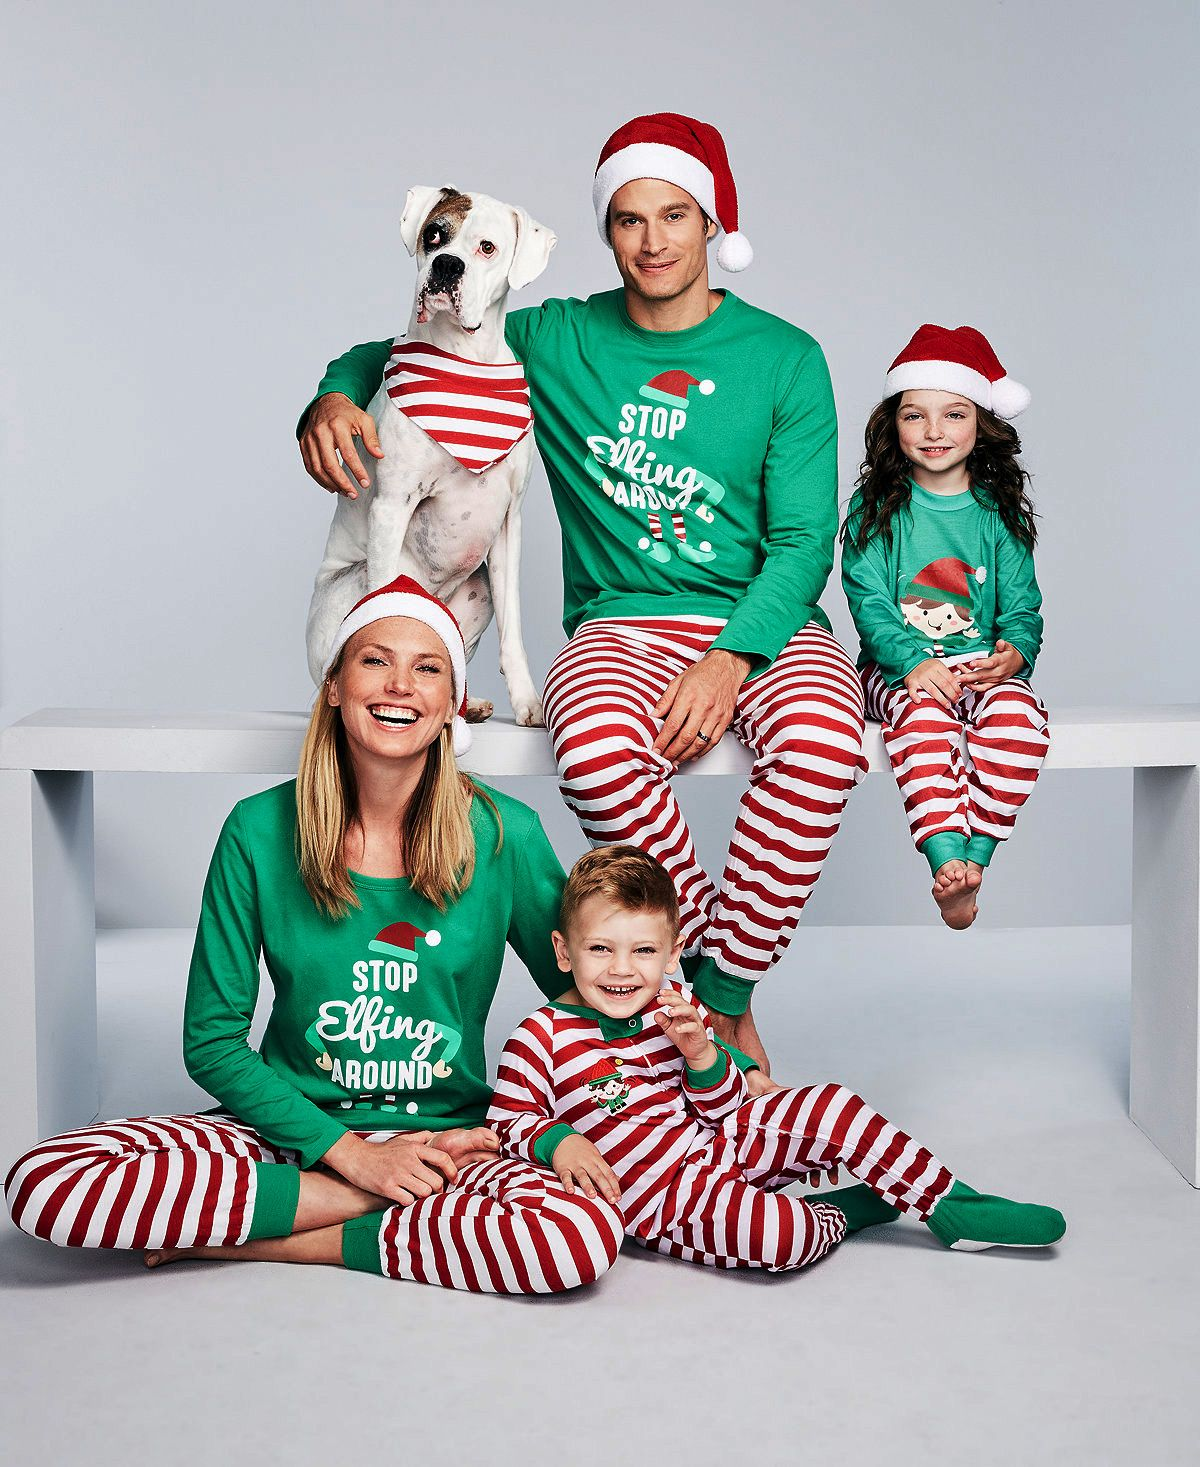 bf9c4a692037 Family clothes christmas family pijamas matching family outfits father  mother son daughter baby pajamas set drop shipping